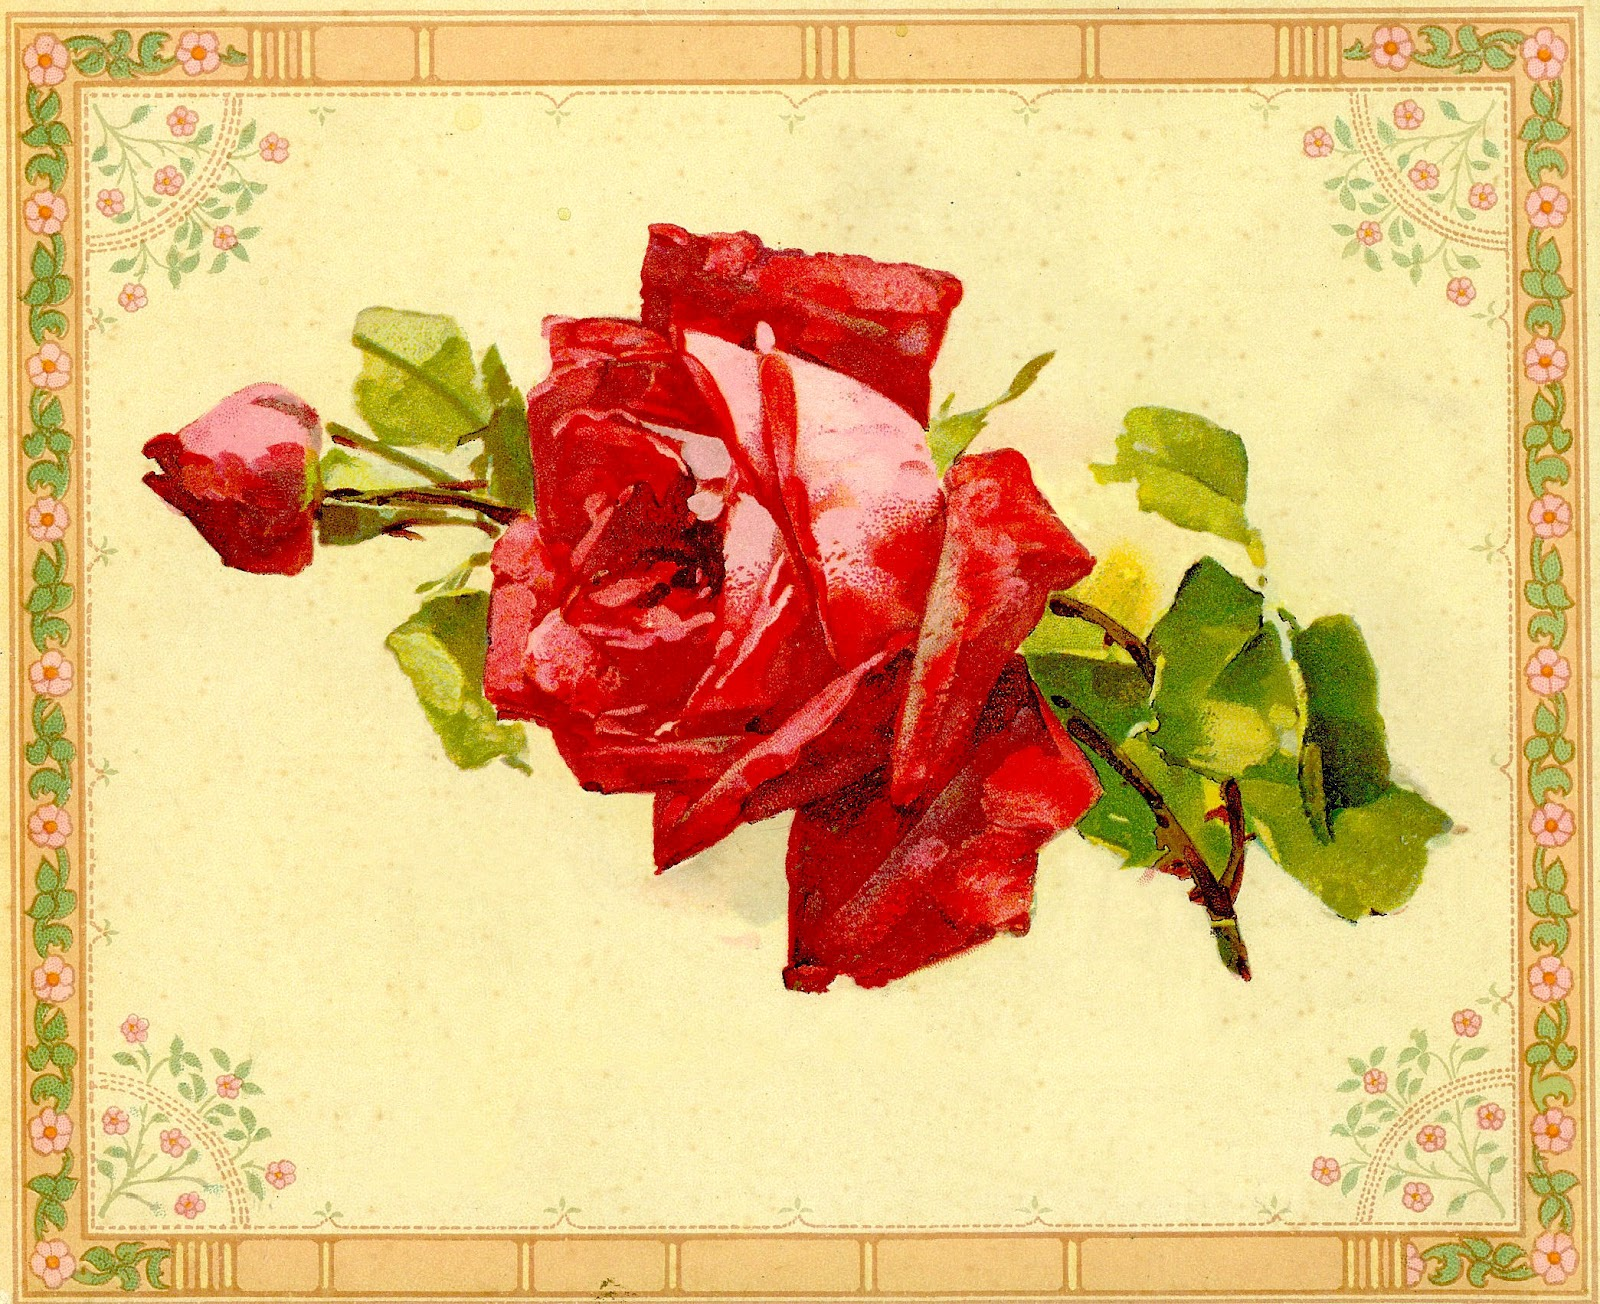 Vintage Flower Clip Art  Red Rose Graphic From Vintage Painting Book